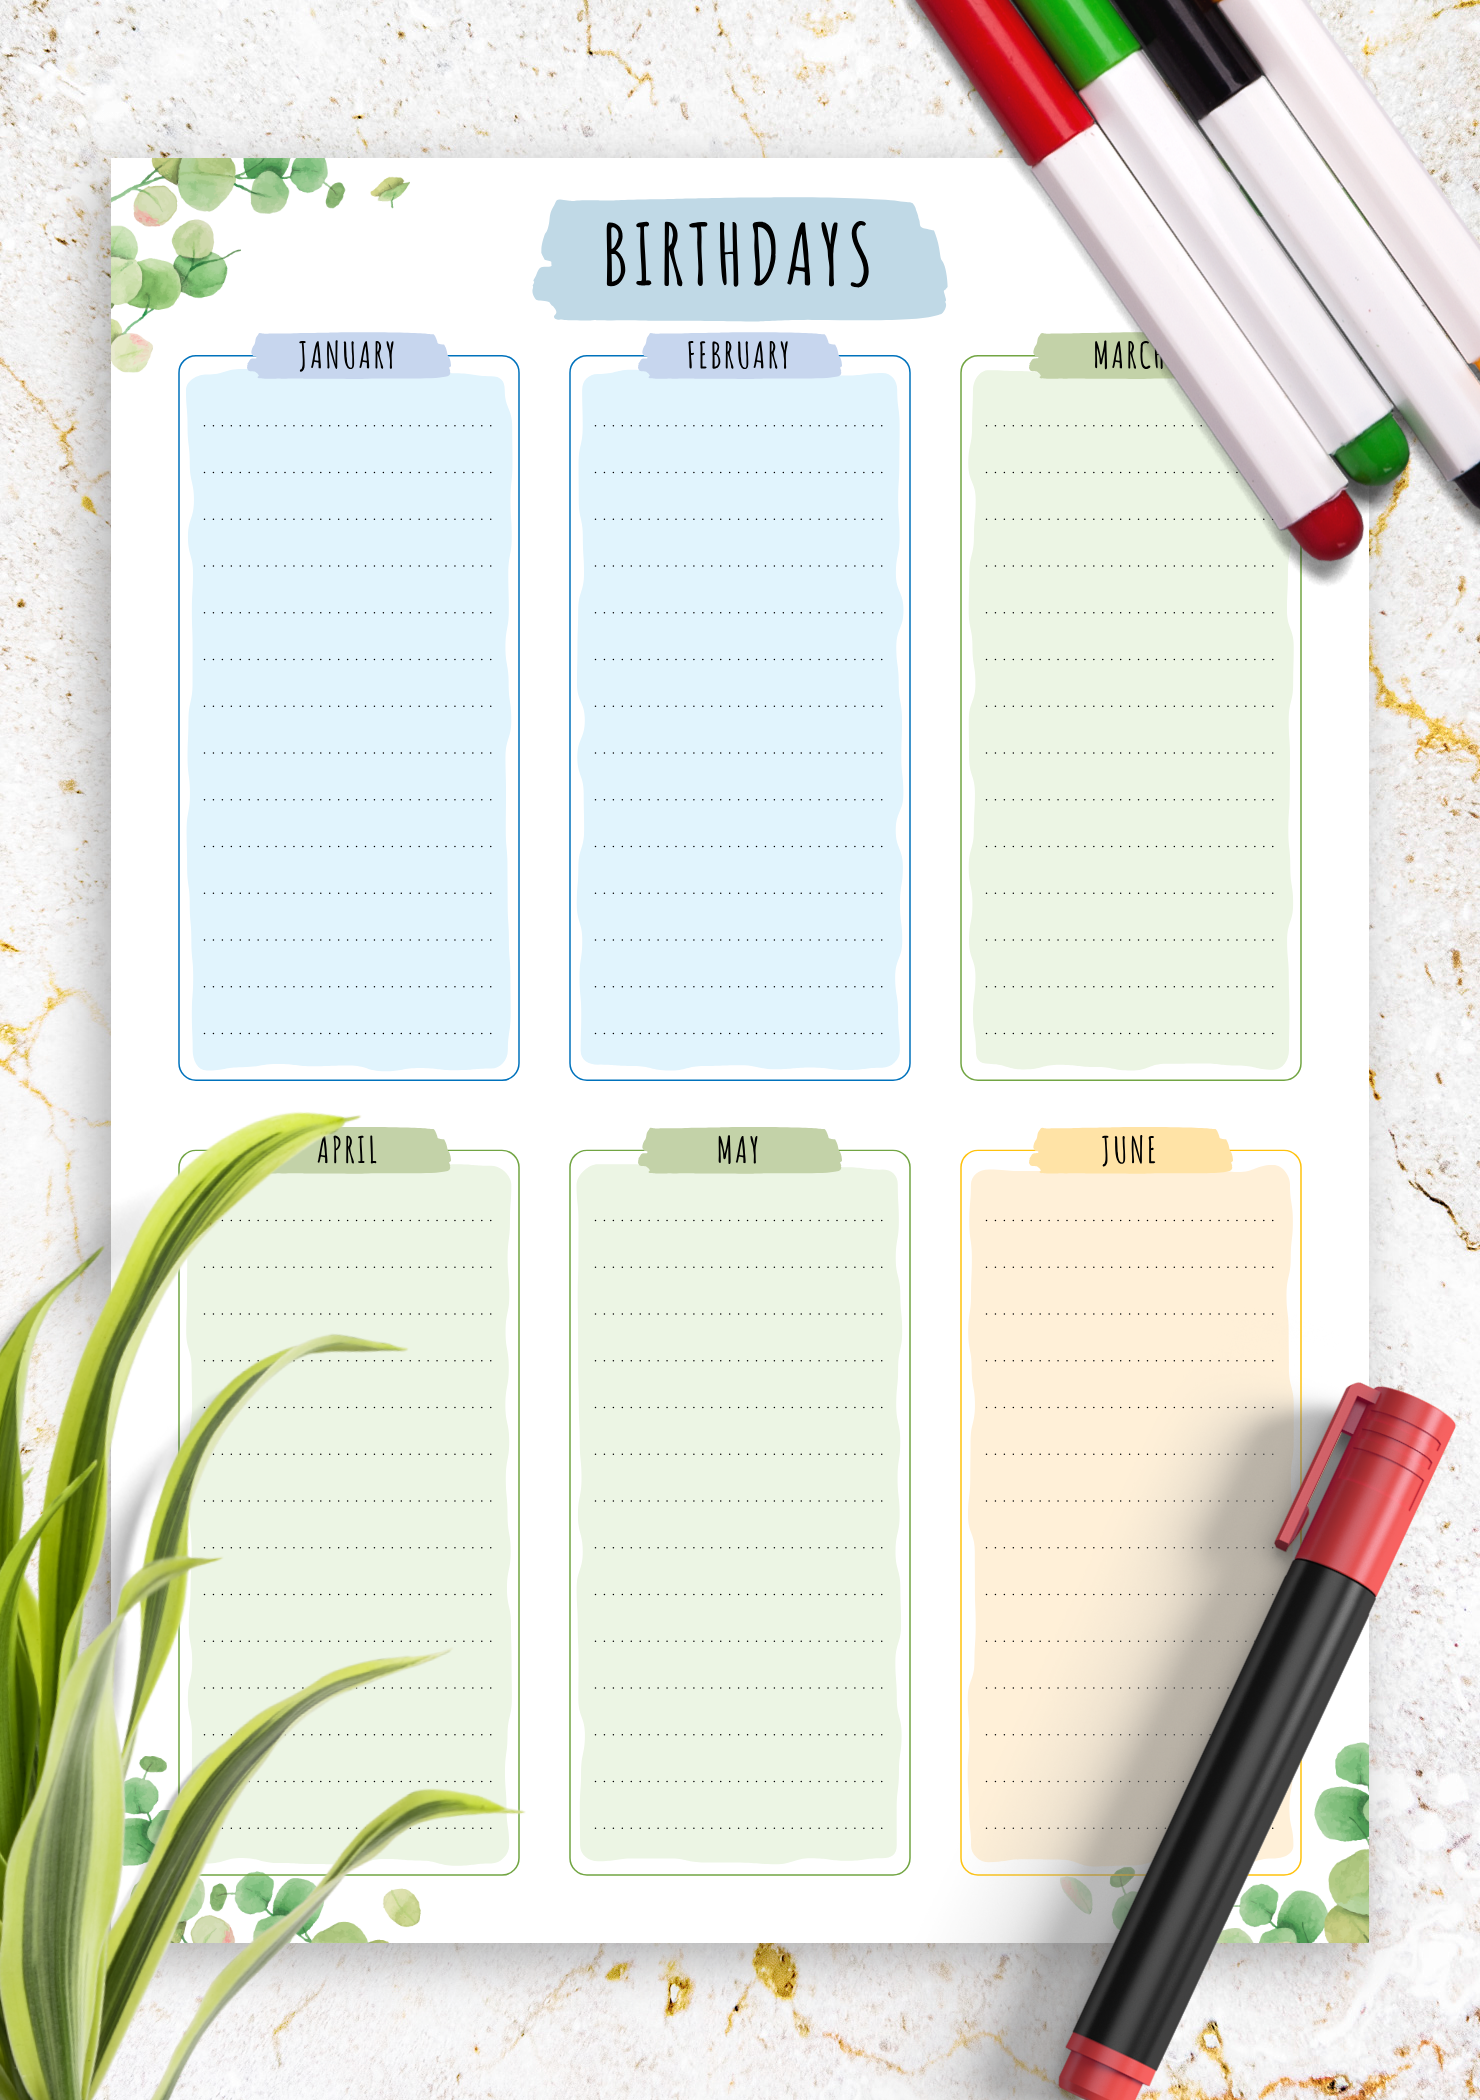 photograph about Free Printable Birthday Calendar identify Totally free Printable Birthday Calendar - Floral Structure PDF Down load